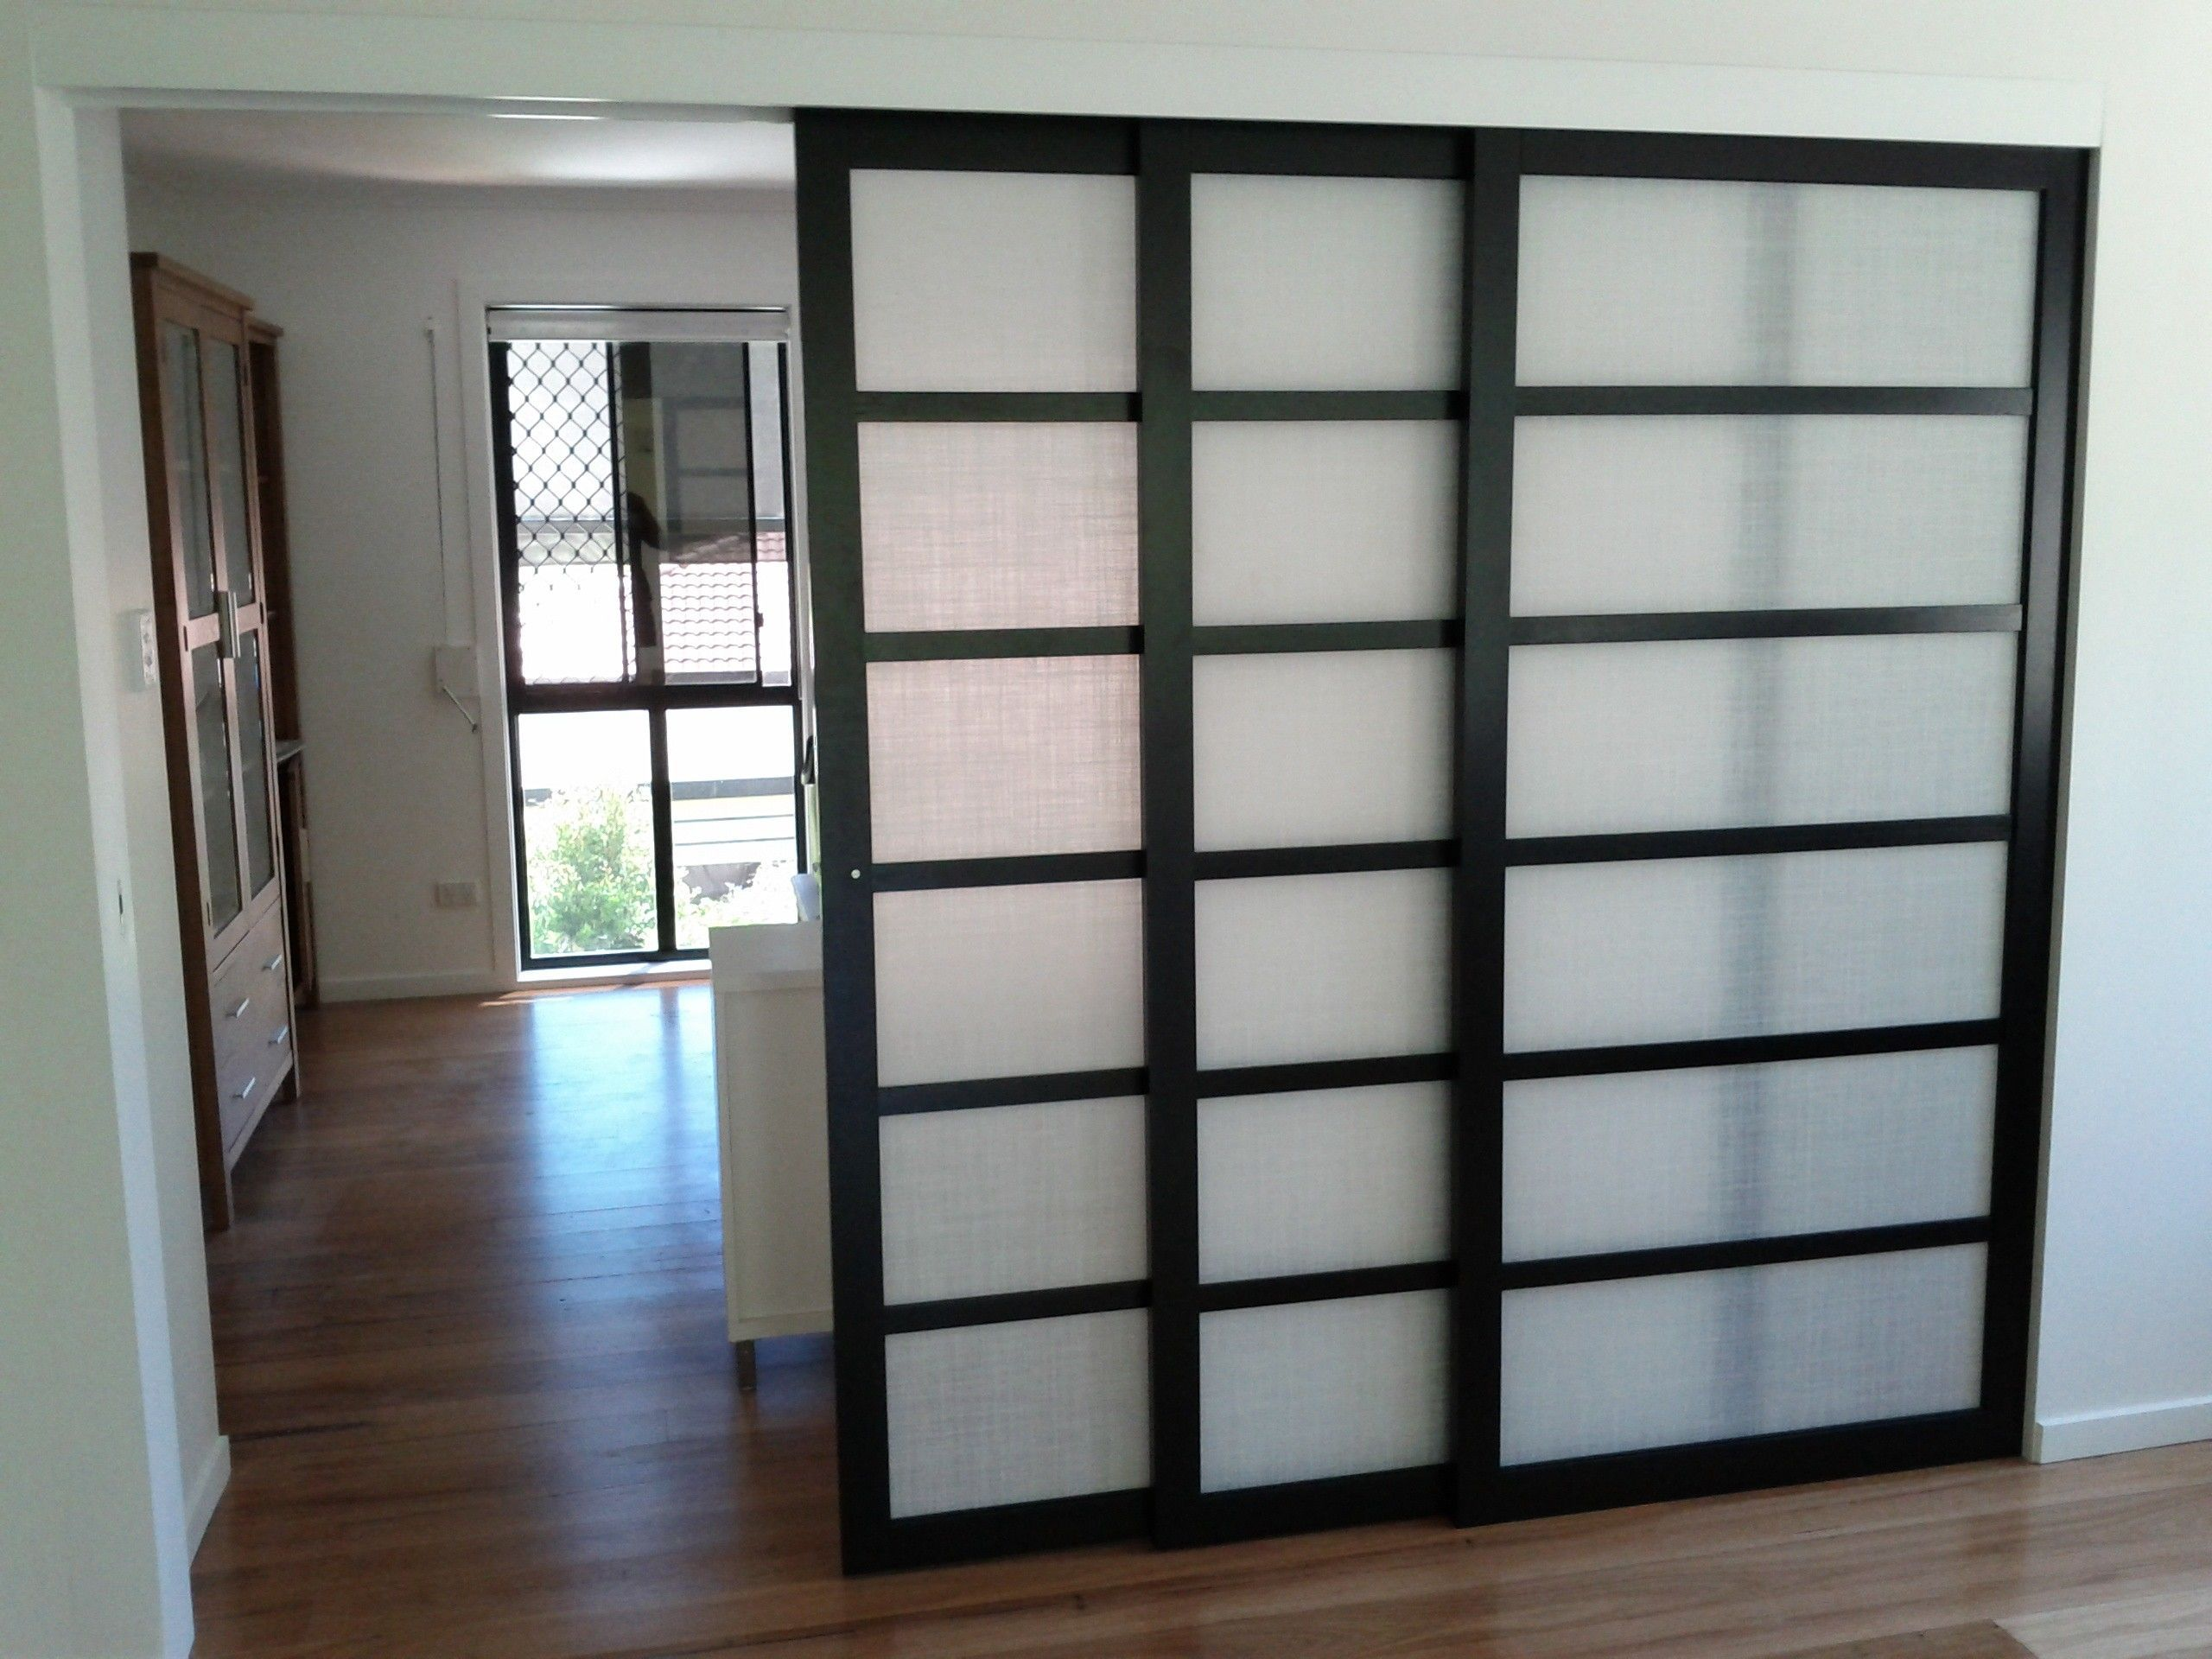 Sliding Room Dividers Ikea Idea Sliding Room Dividers Captivating Sliding Panel Room